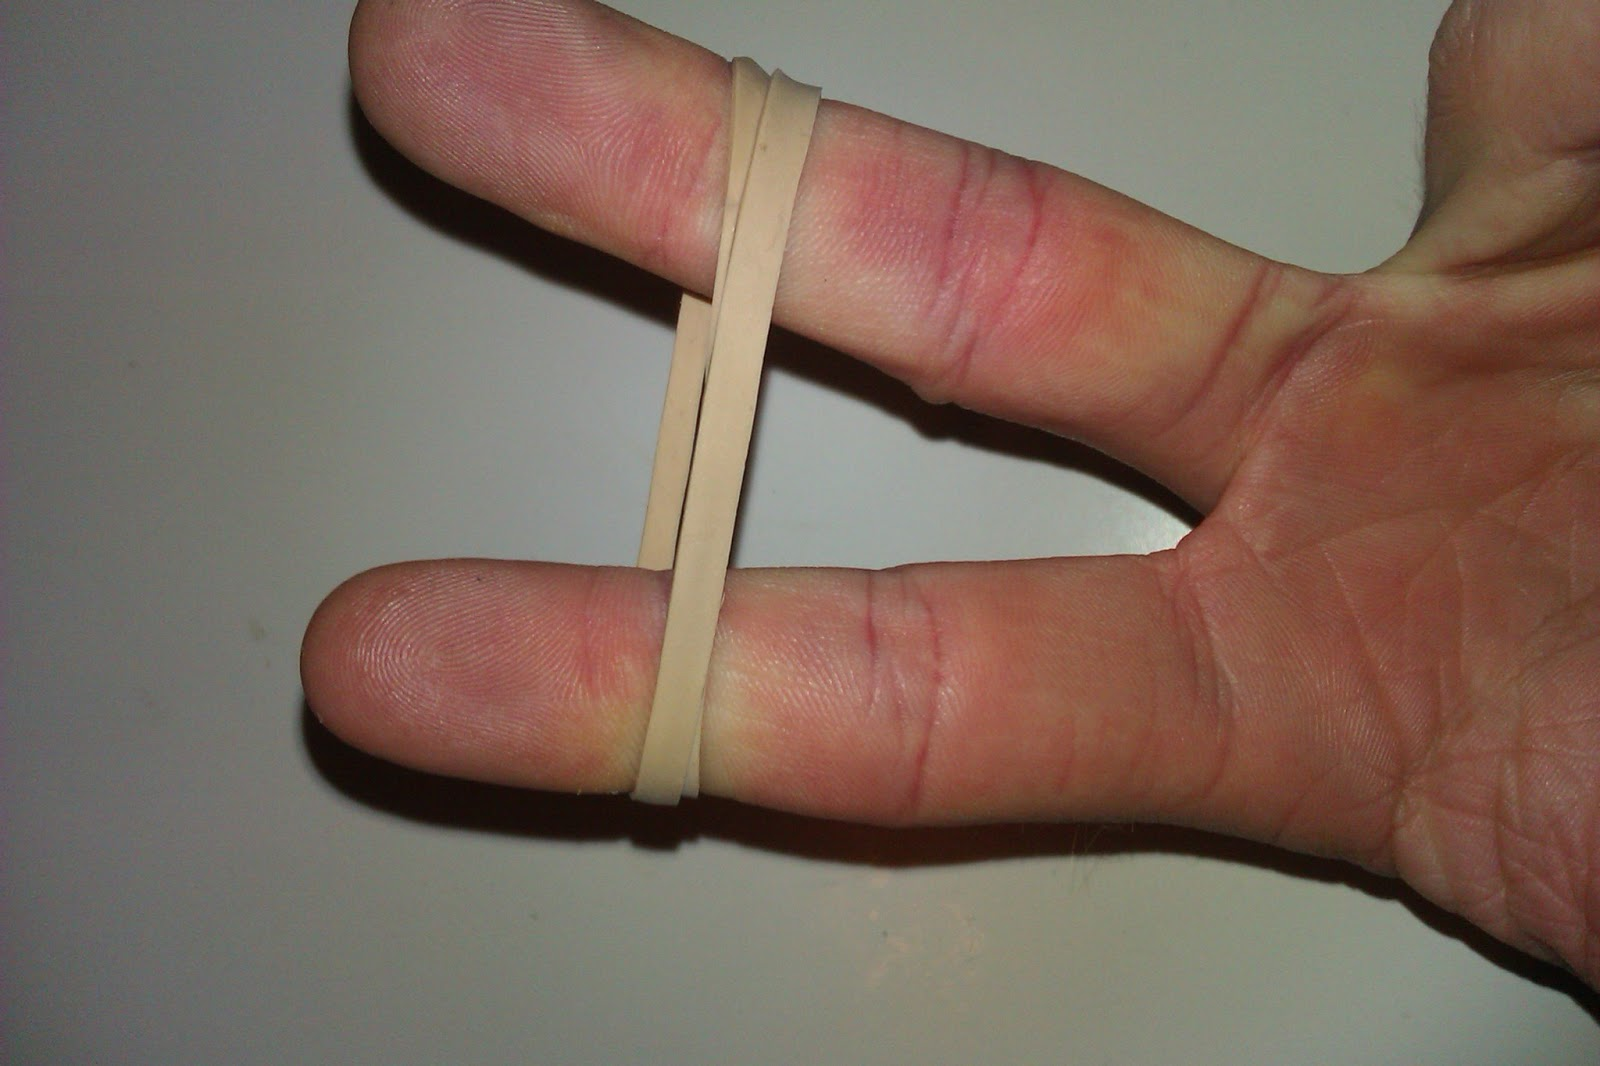 how to tell if your pinky knuckle is broken